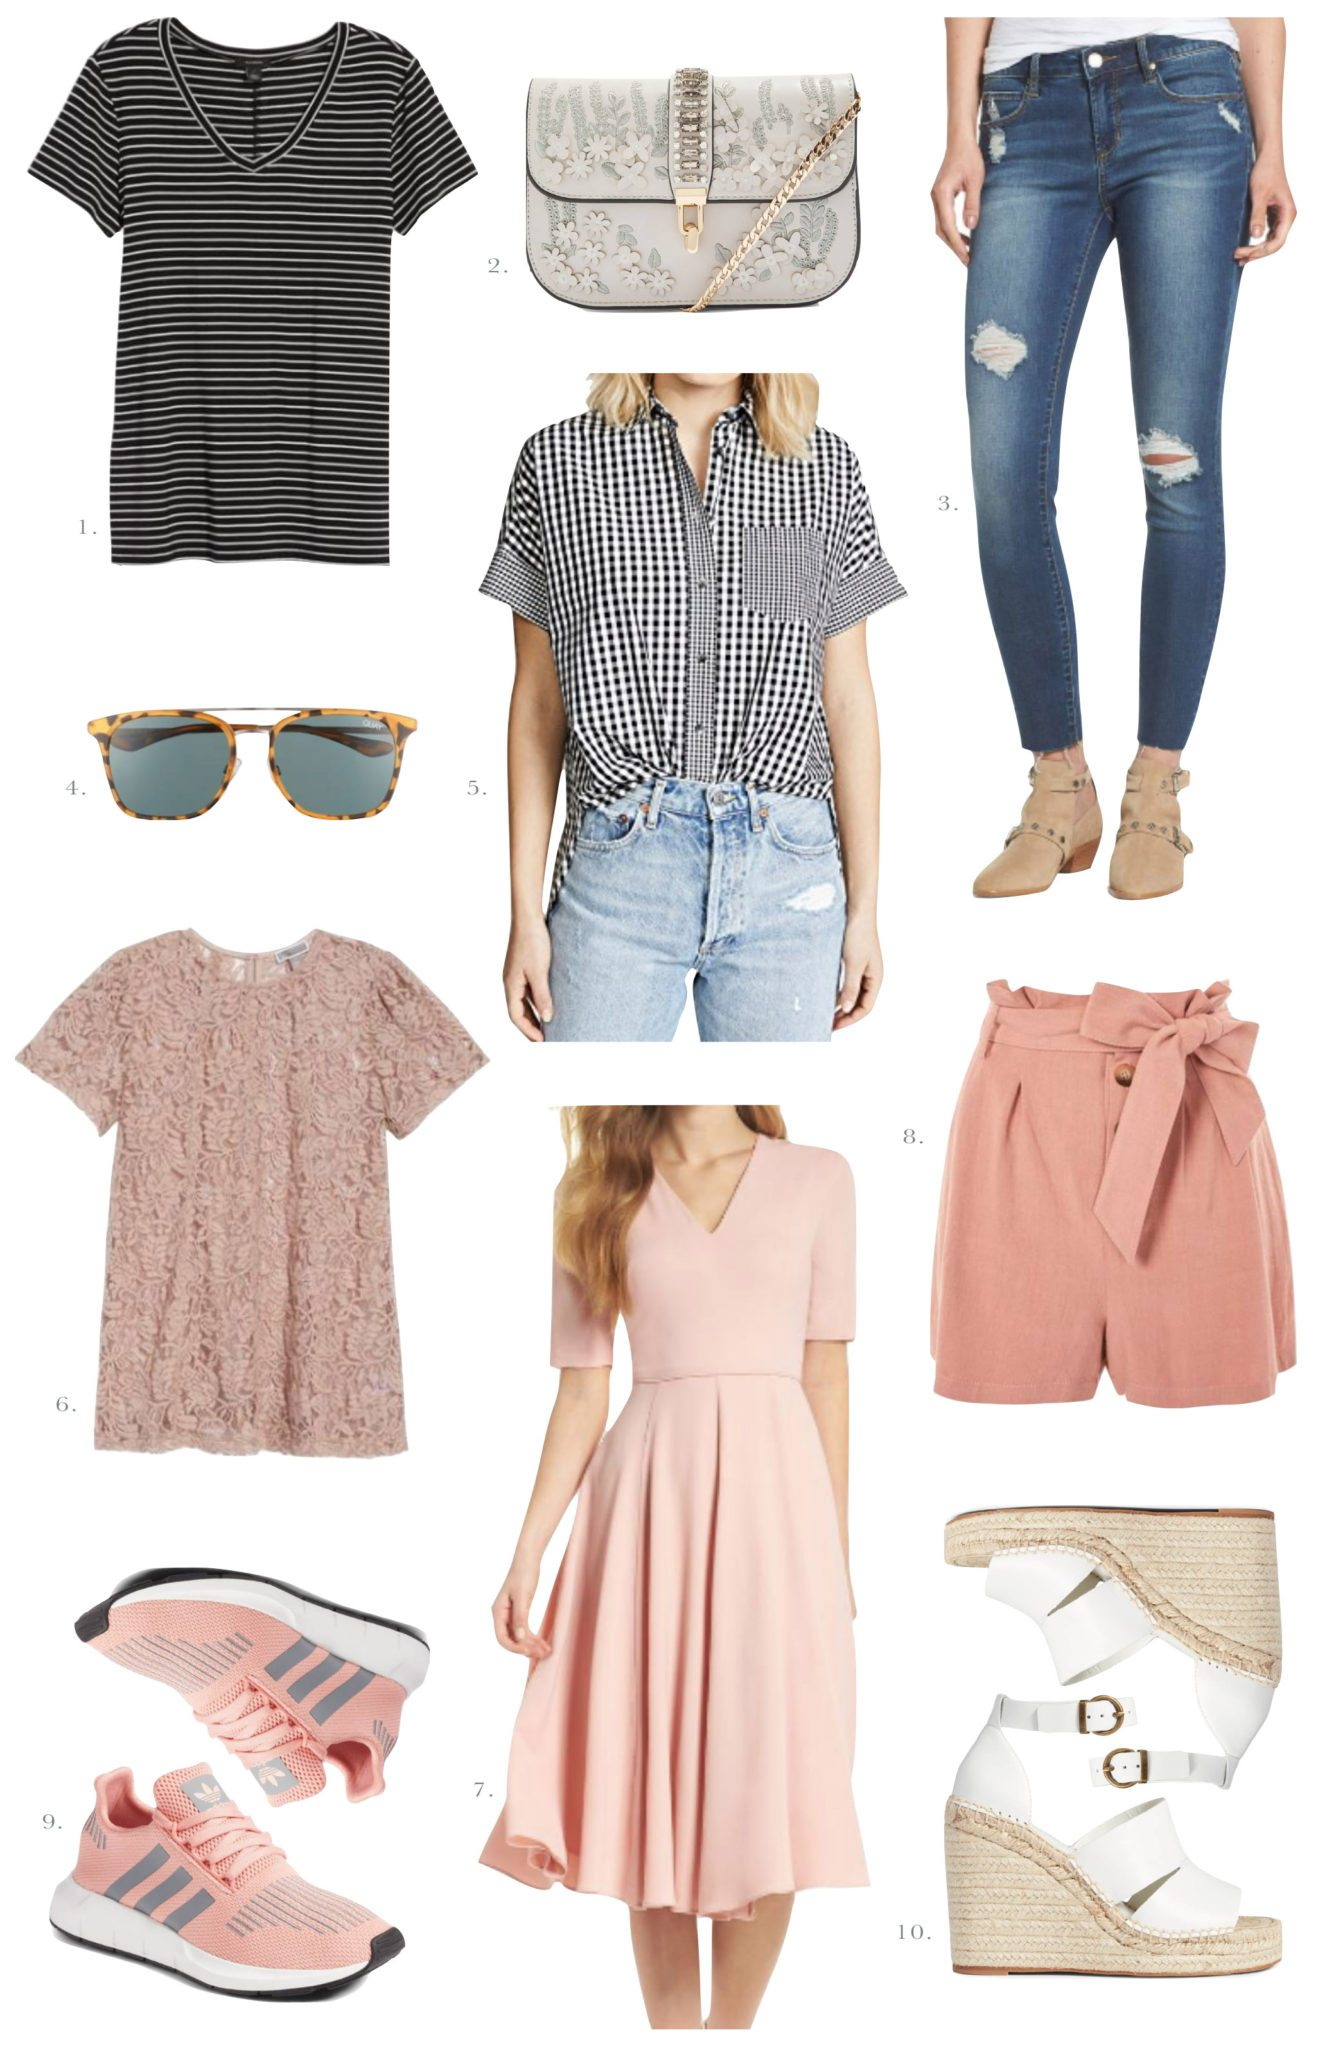 TEN TRENDS + MODERN GIRLS GUIDE TO SEWING SALE!